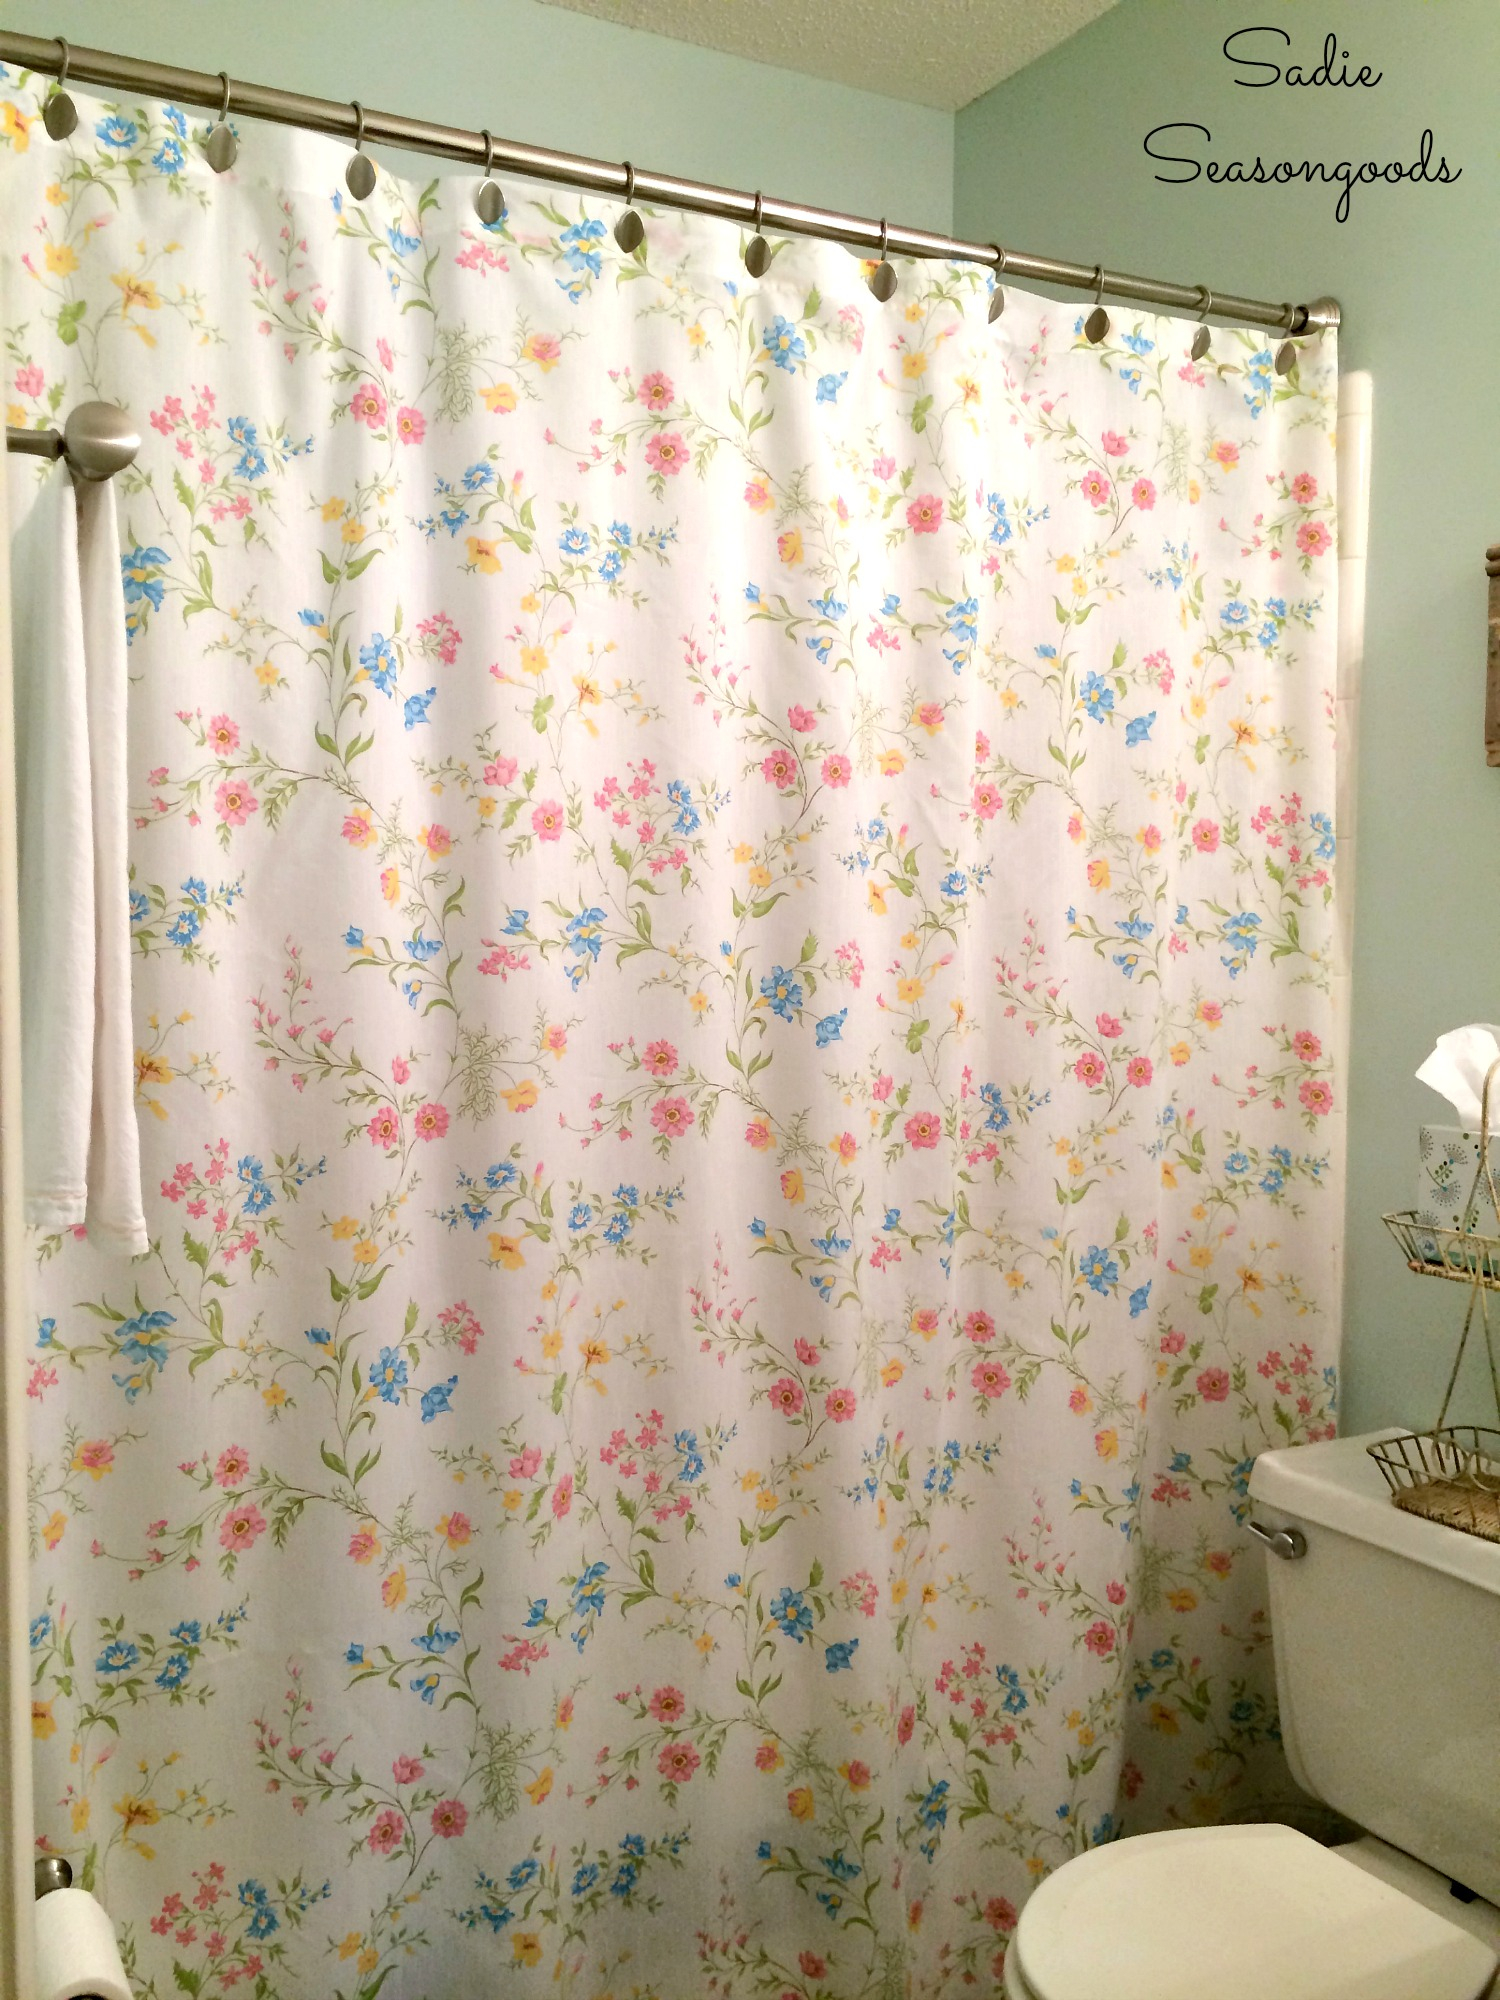 Diy Shower Curtain From A Repurposed Vintage Bed Sheet Inside Size 1500 X 2000